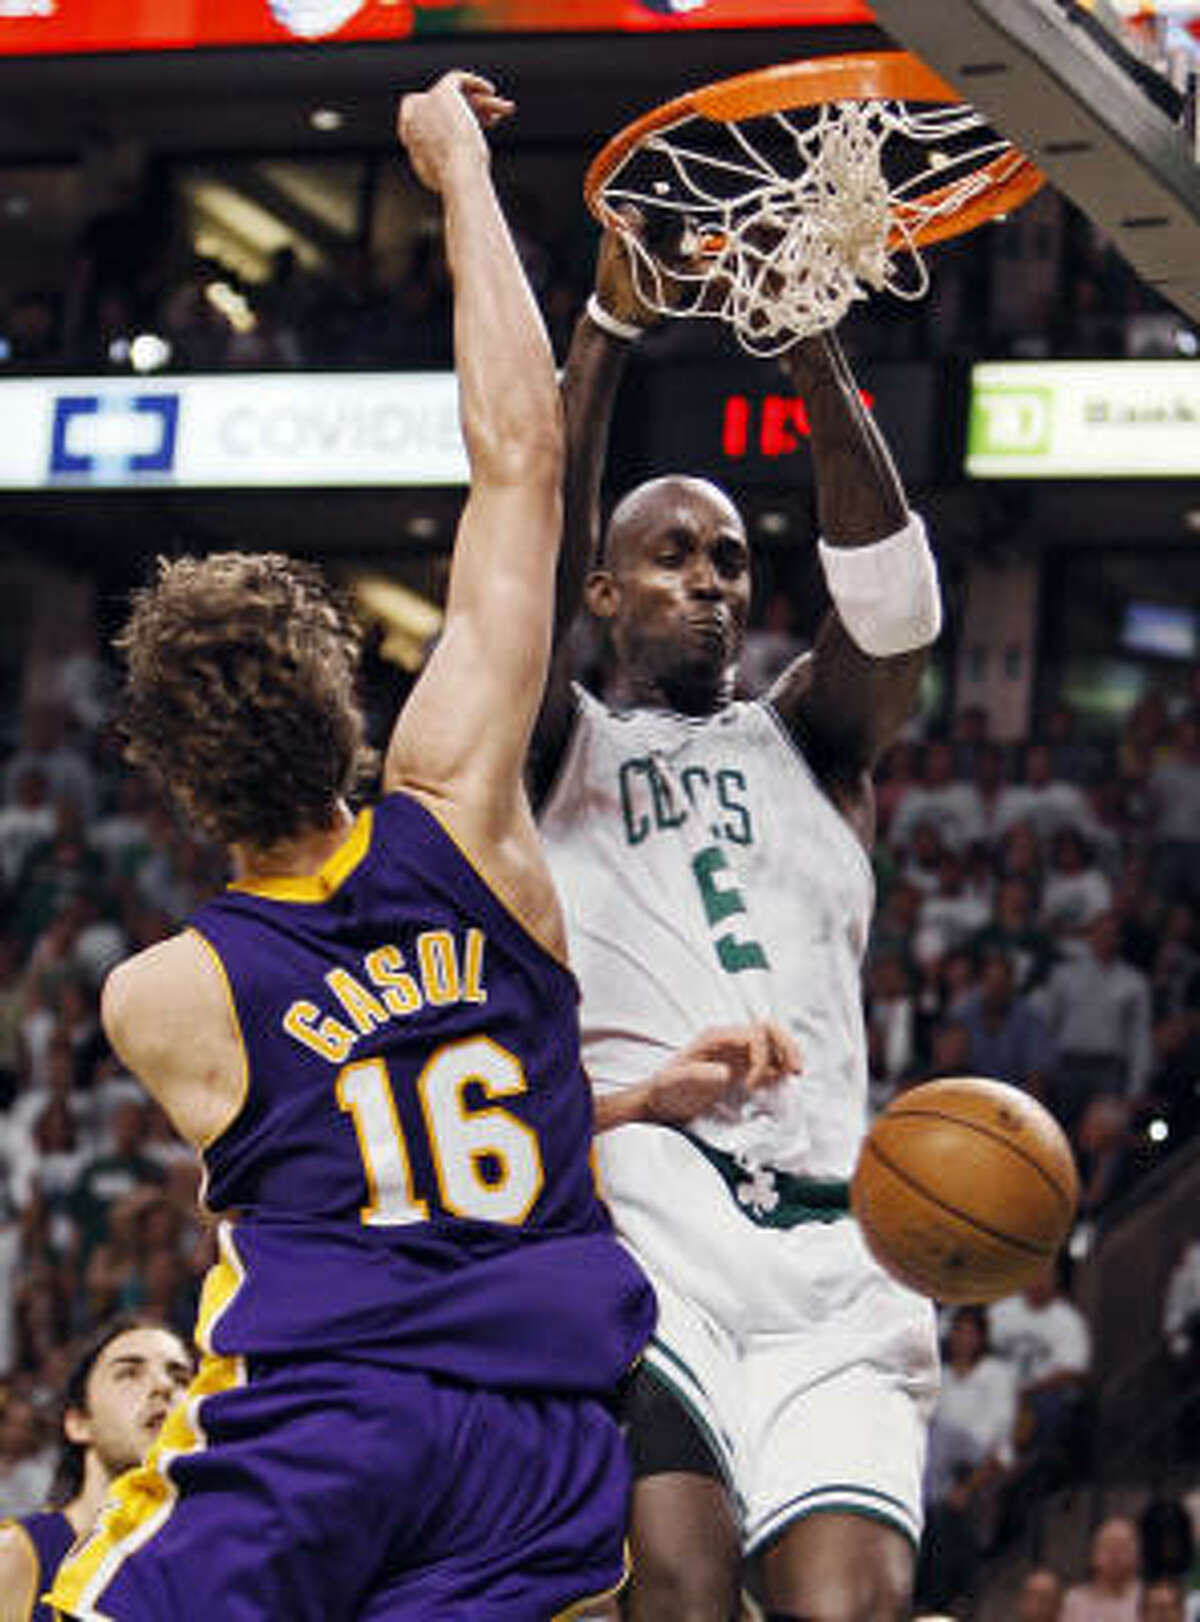 Kevin Garnett led the Celtics to their record 17th NBA title in 2008. It was the ninth time in 11 meetings the Celtics beat the Lakers in the NBA finals.